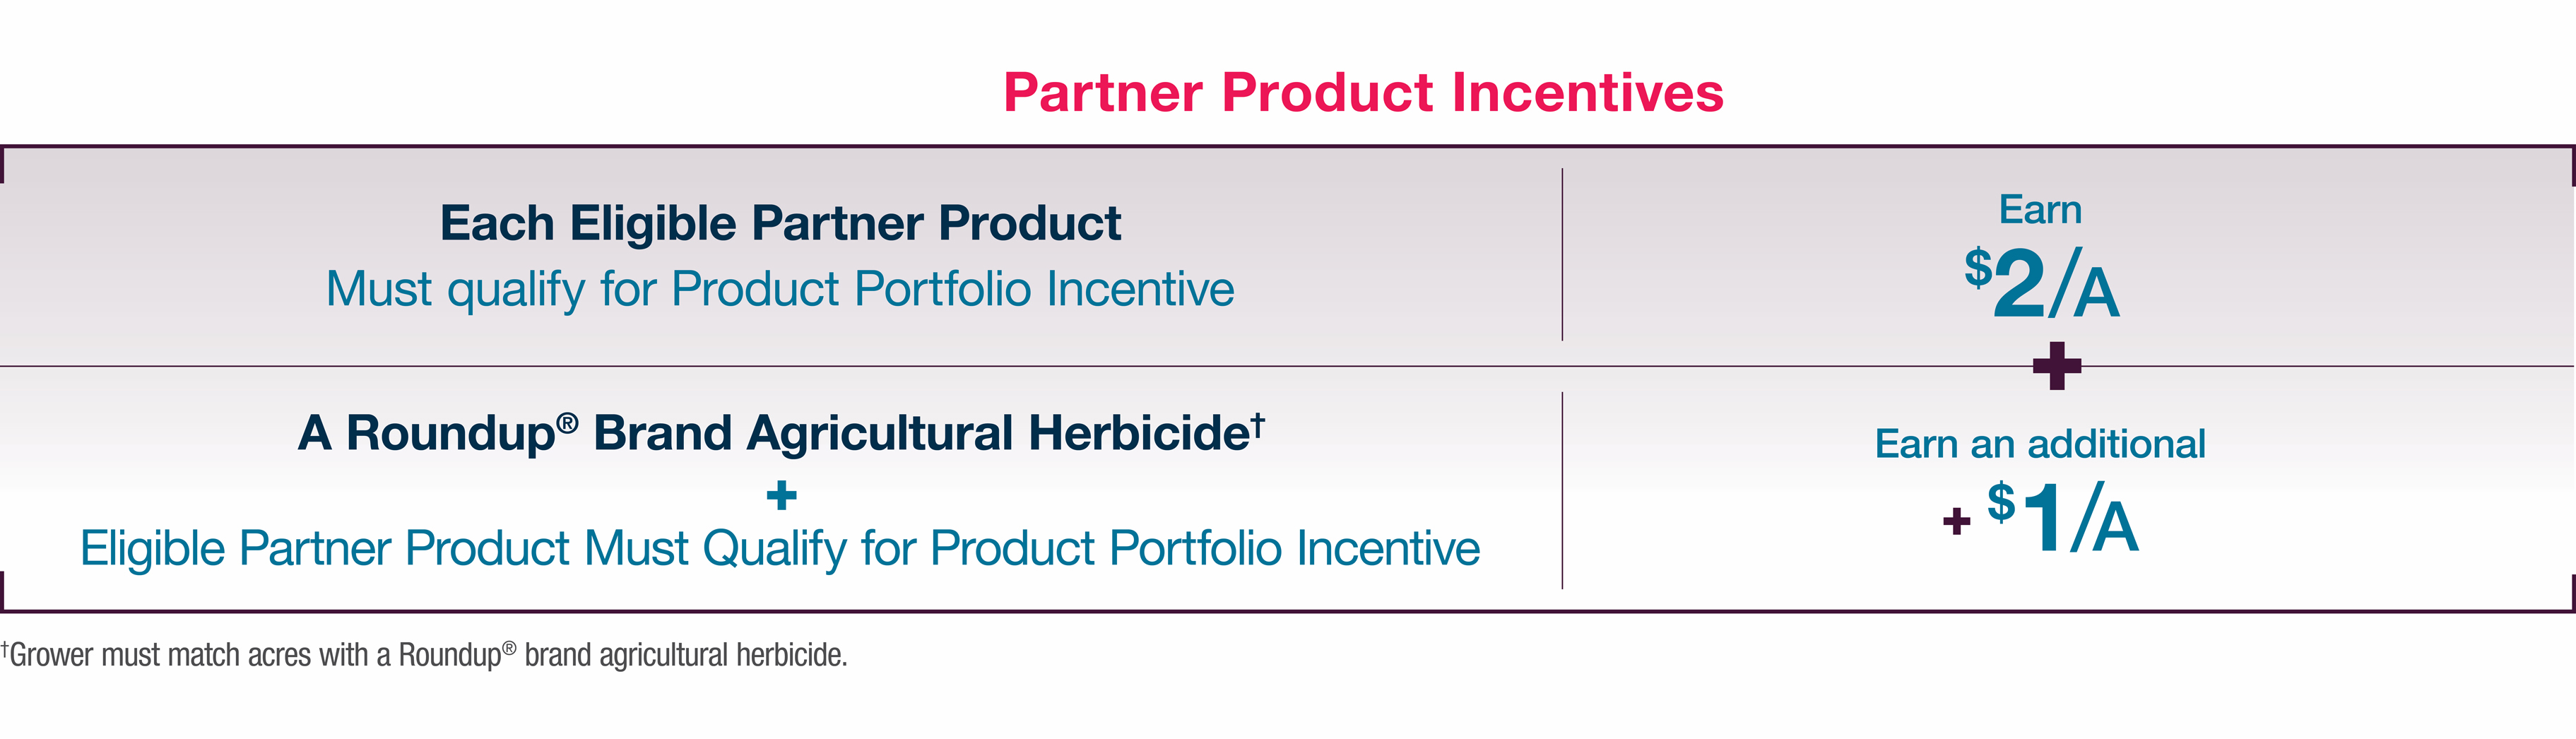 Partner Product Incentives Chart showing how partner products can earn rewards